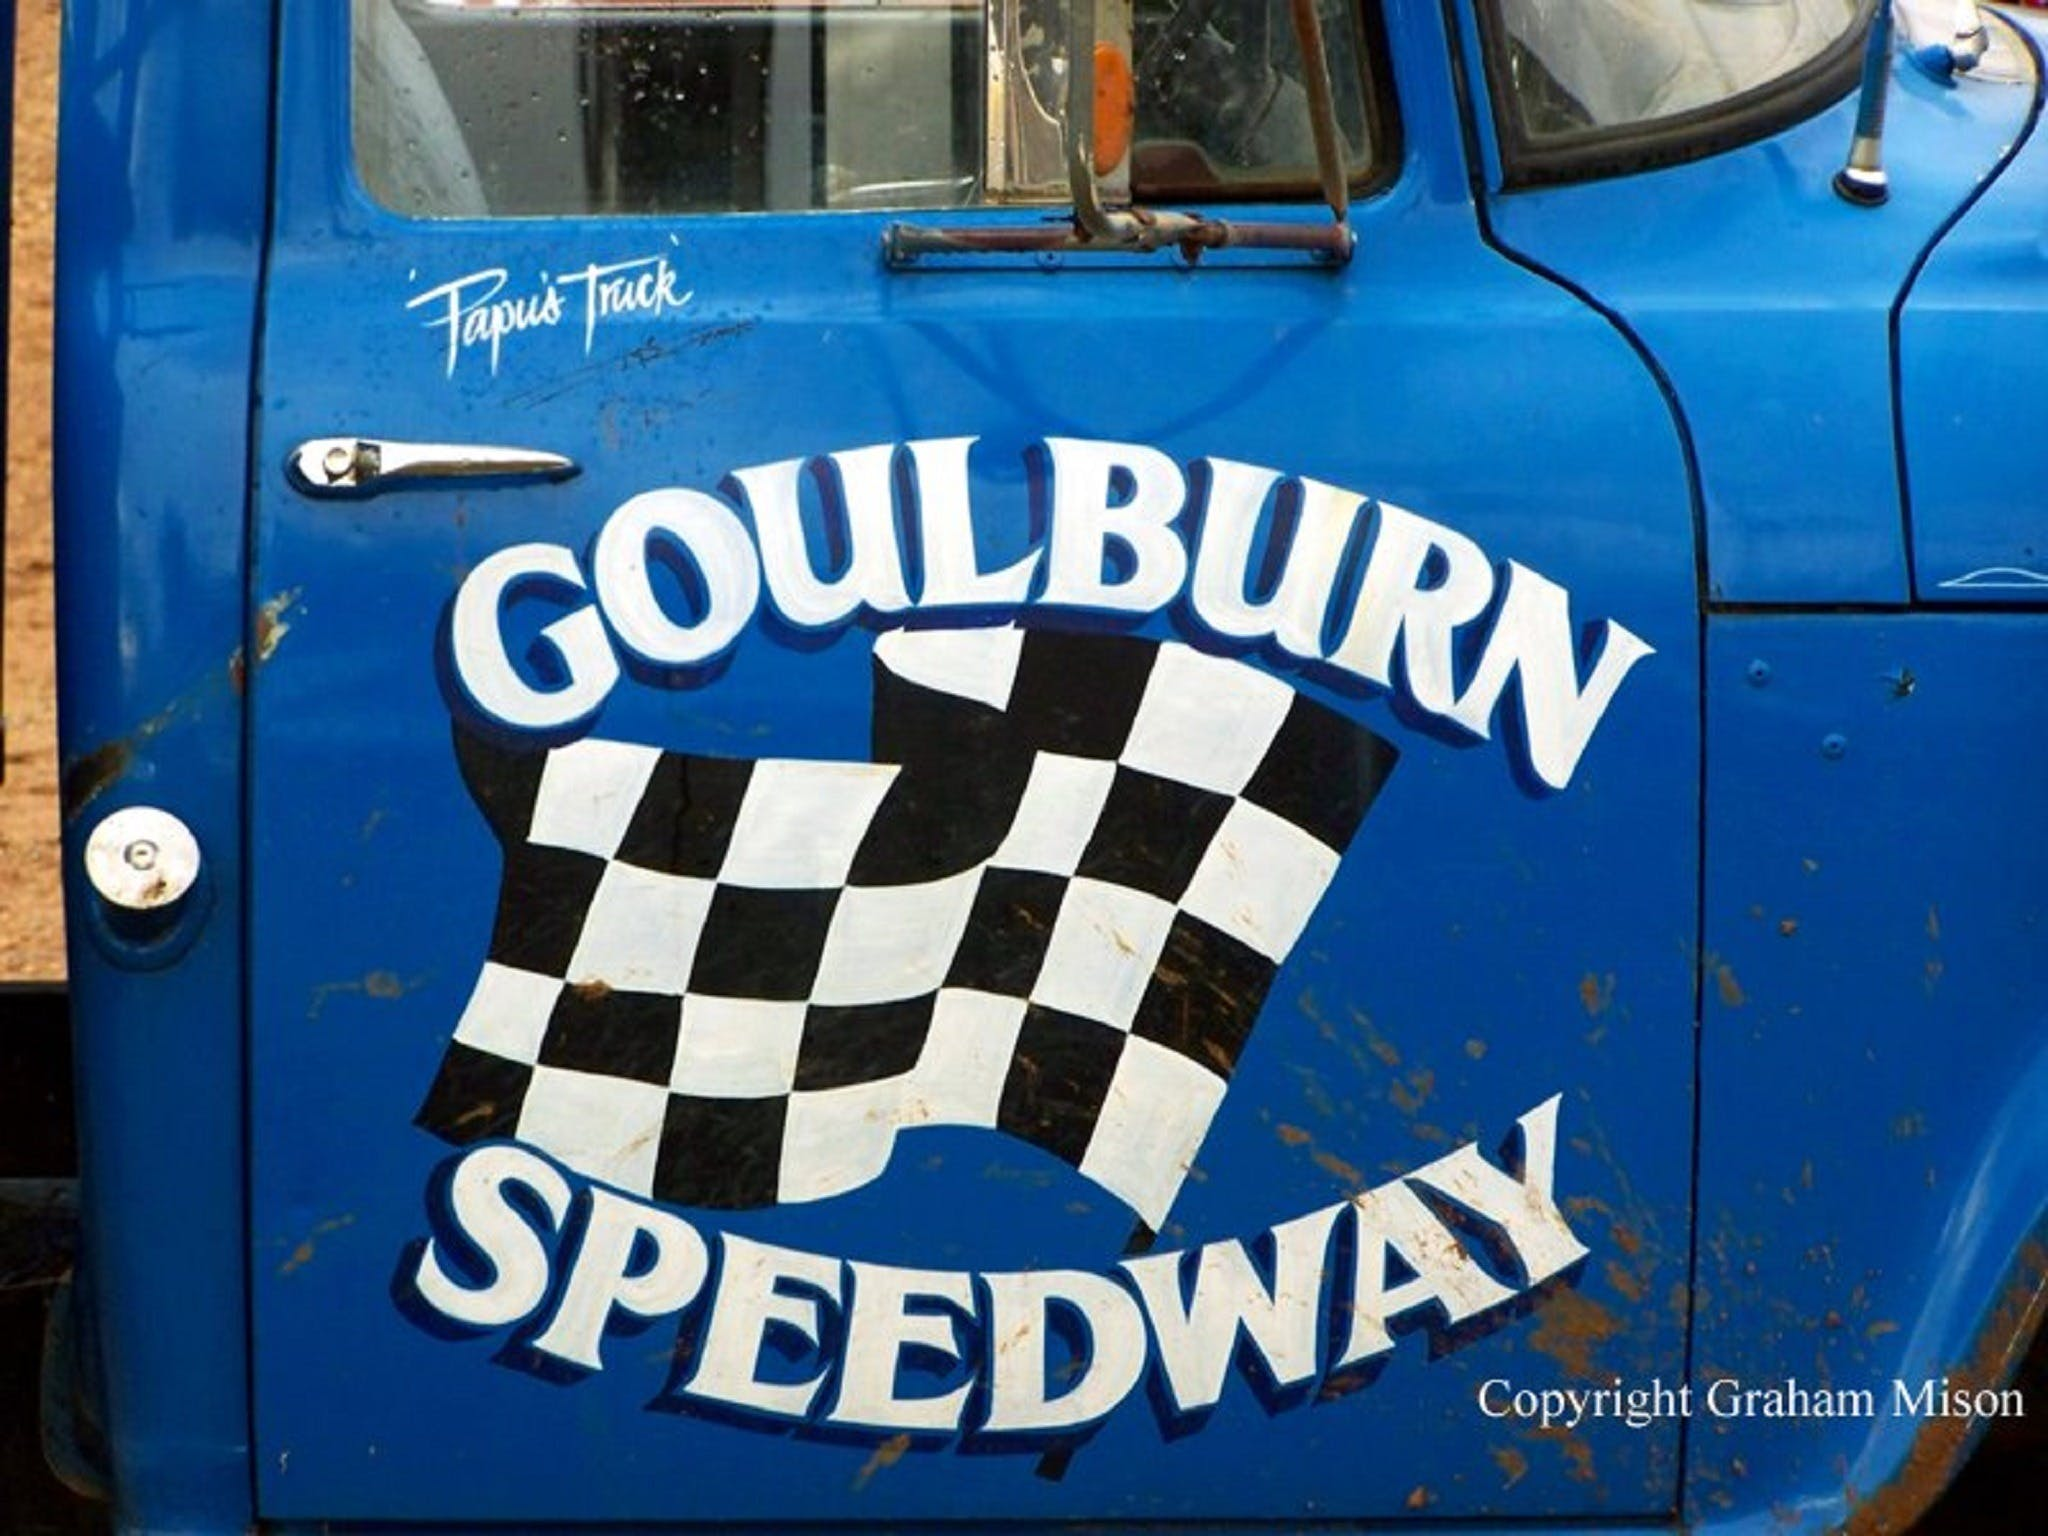 50 years of racing at Goulburn Speedway - Sydney Tourism